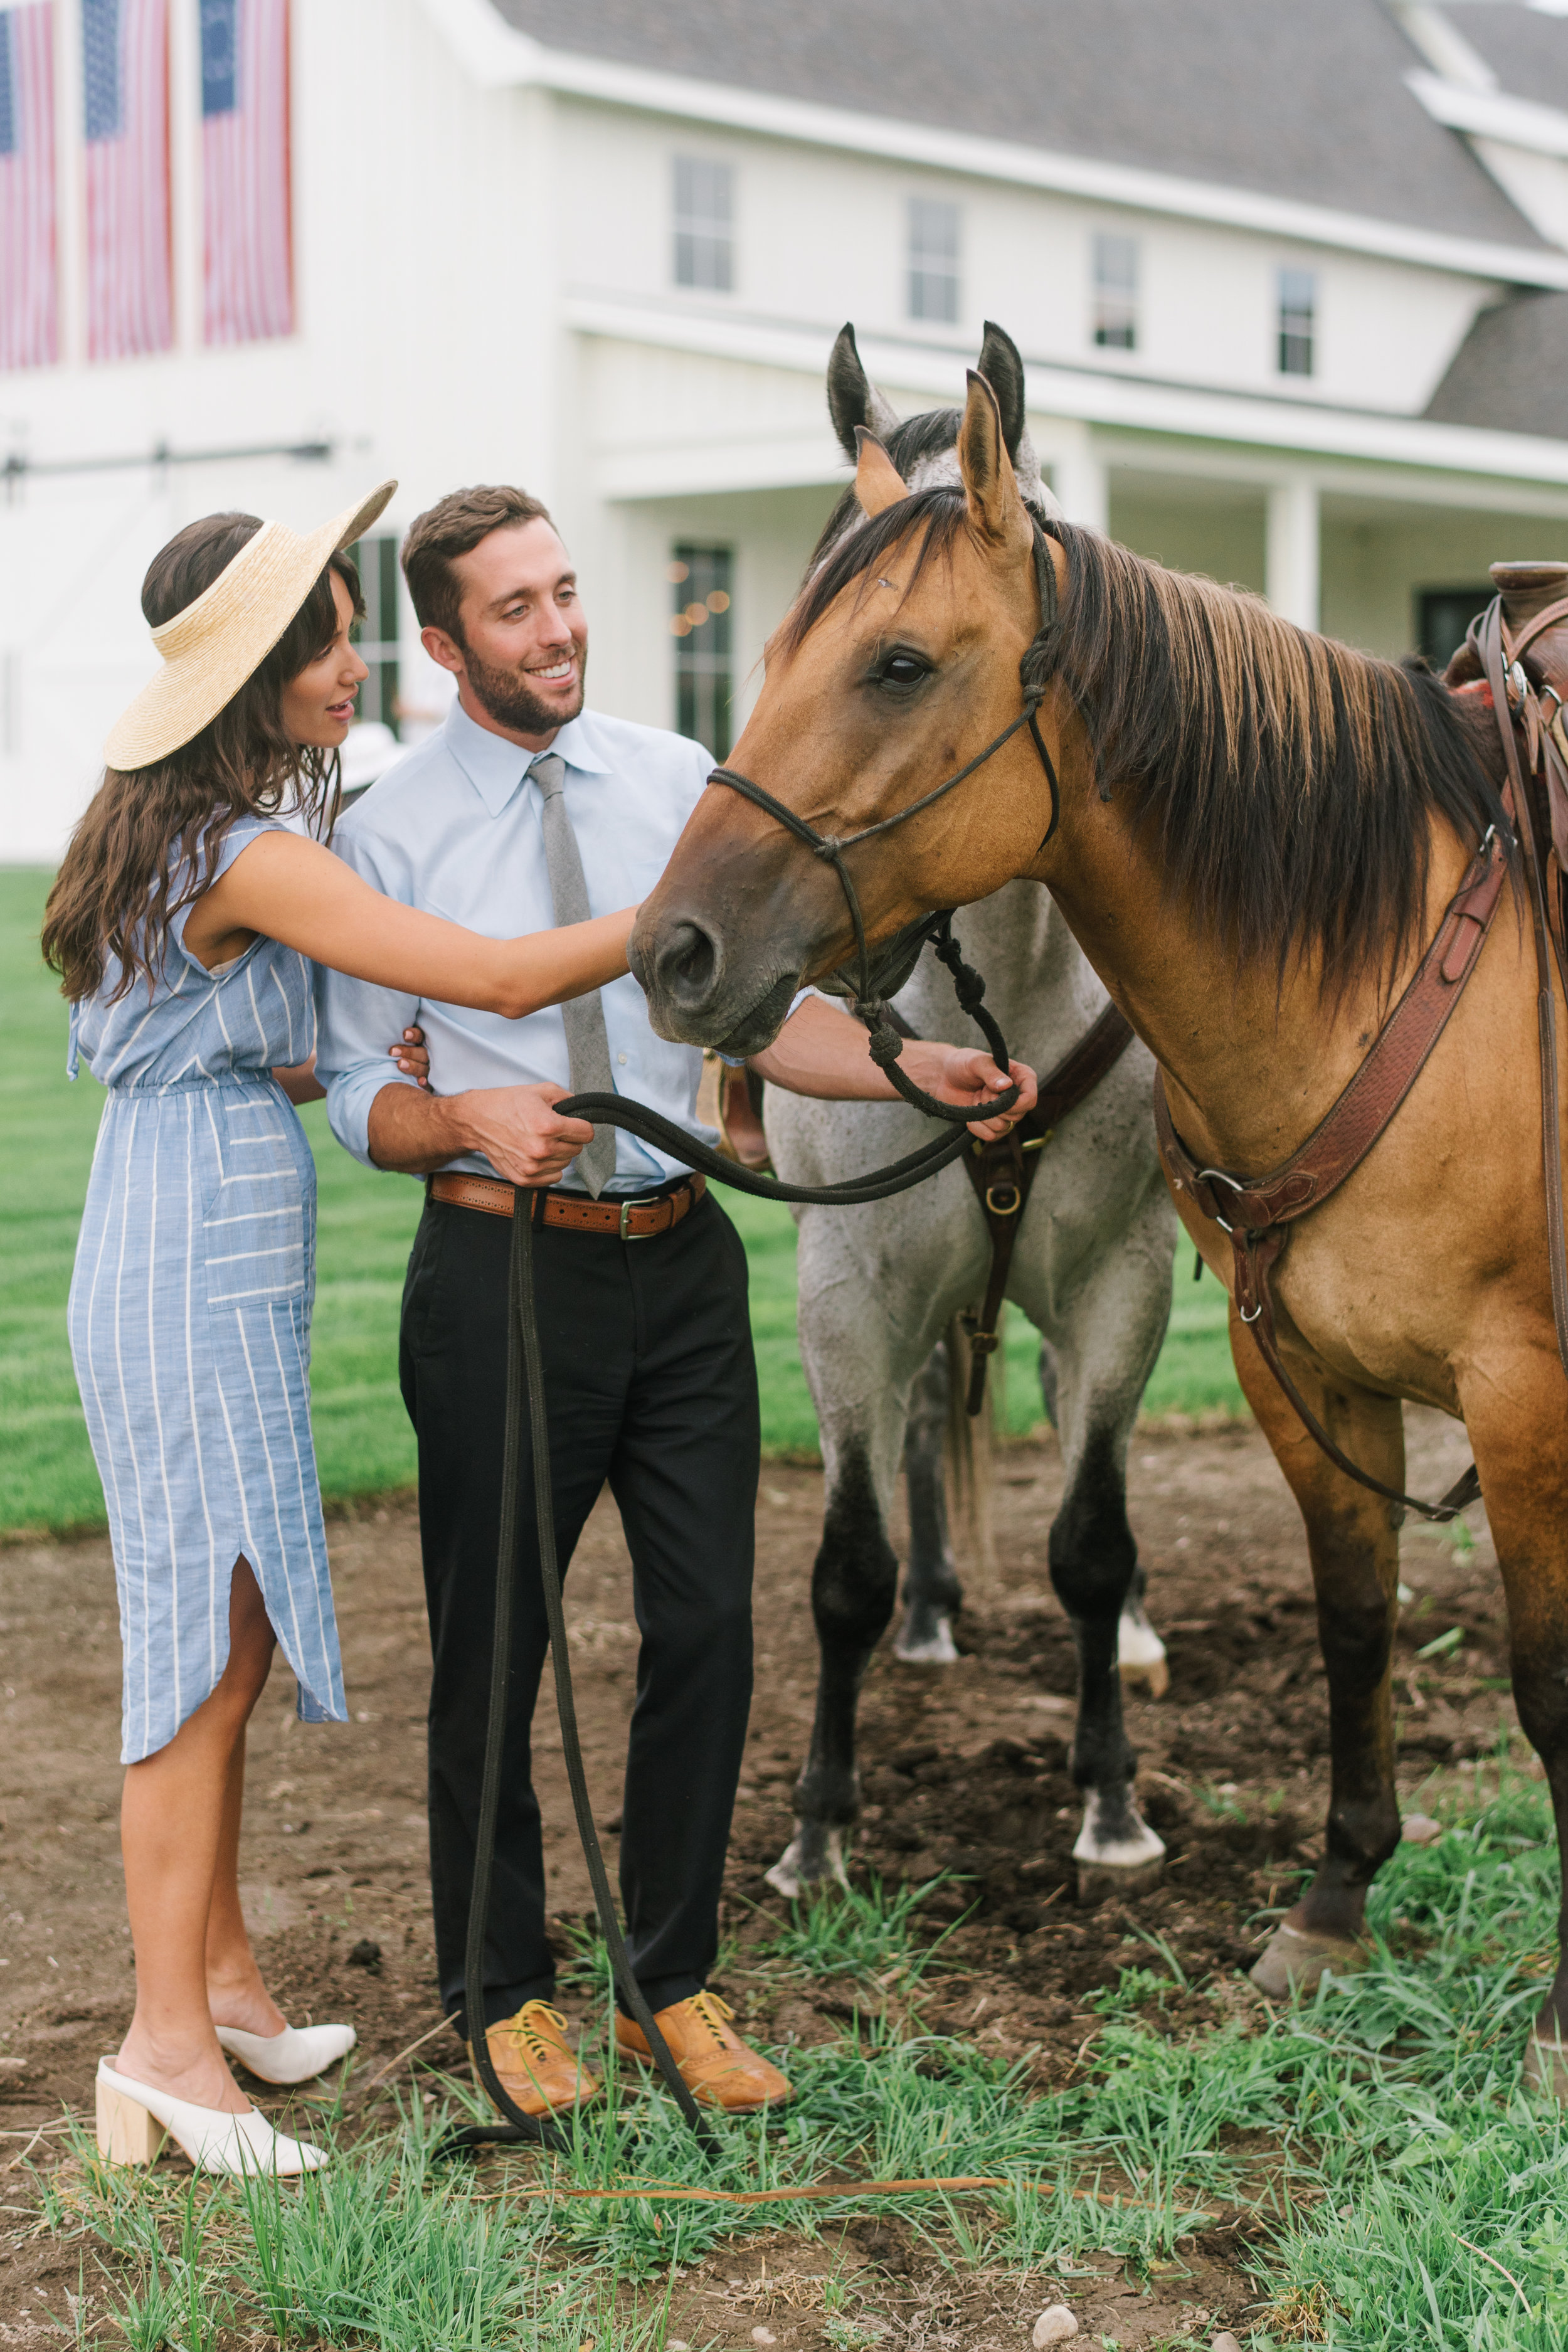 All-American Rehearsal Dinner | Red, White, and Blue Decor | Utah Valley Bride Magazine | River Bottoms Ranch | Michelle Leo Events | Utah Event Planner and Designer | Heather Nan Photography